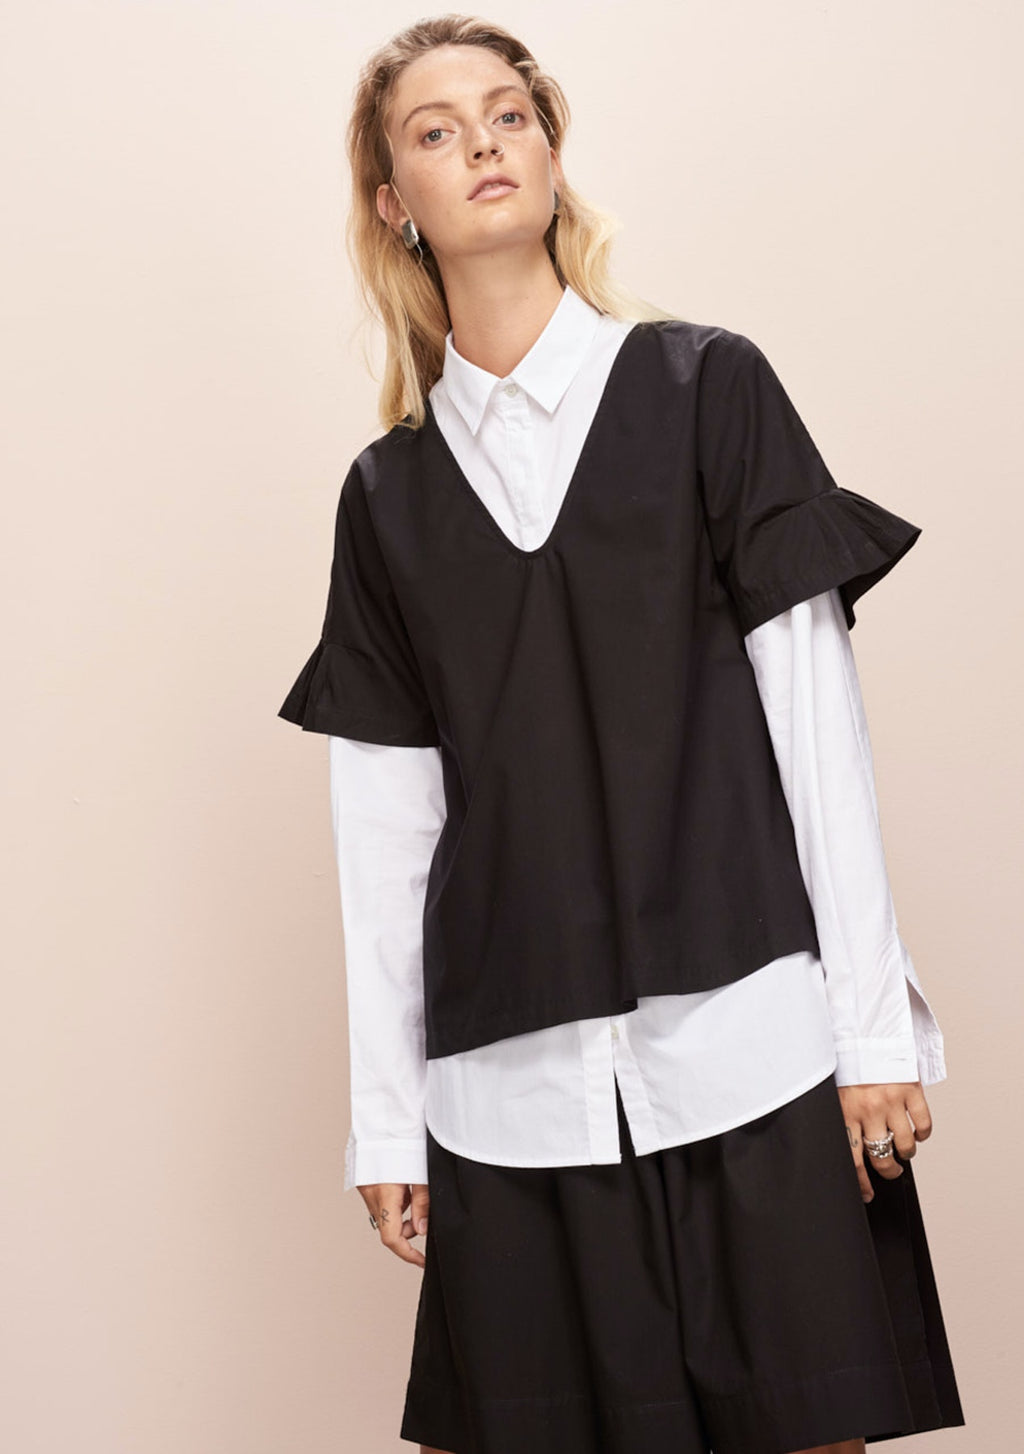 Daze Top in Black by Kowtow